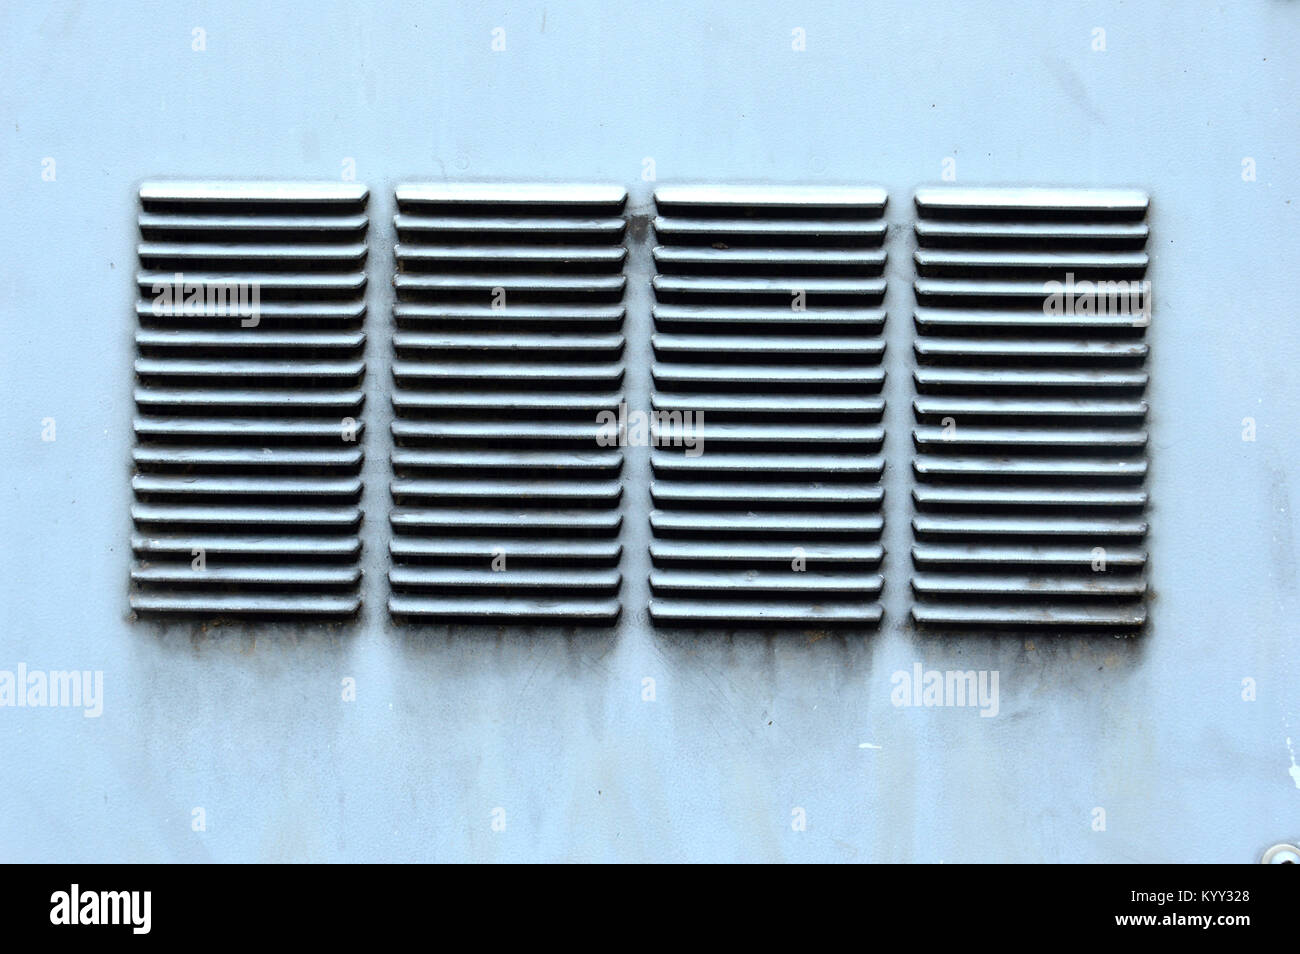 air grille stockfotos air grille bilder seite 2 alamy. Black Bedroom Furniture Sets. Home Design Ideas